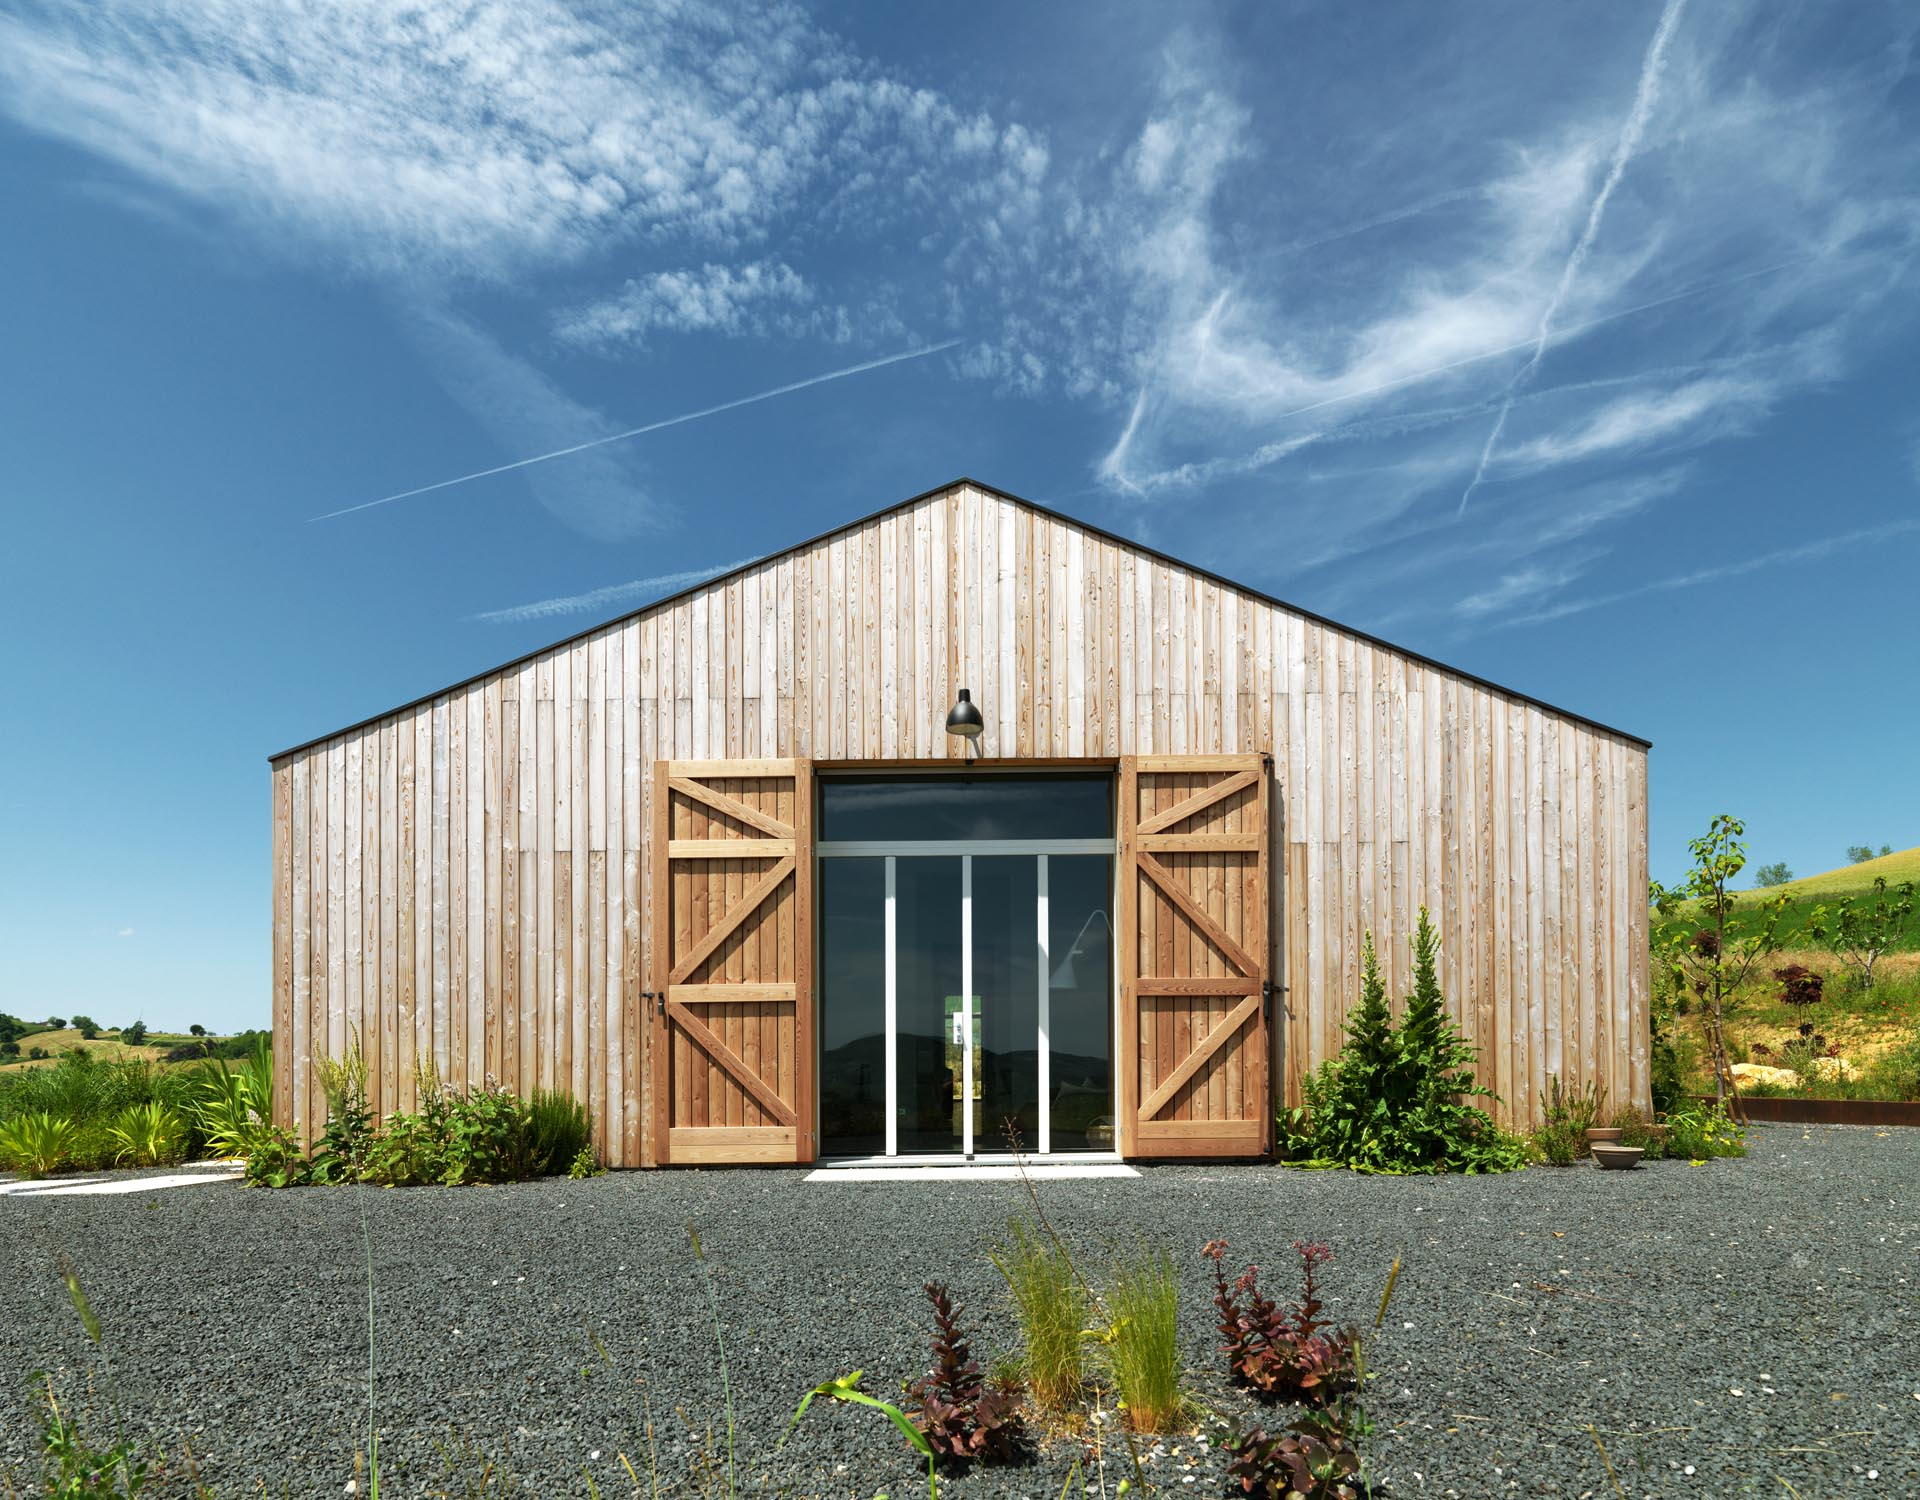 The exterior of this modern farmhouse is clad with natural larch wood and shutters.